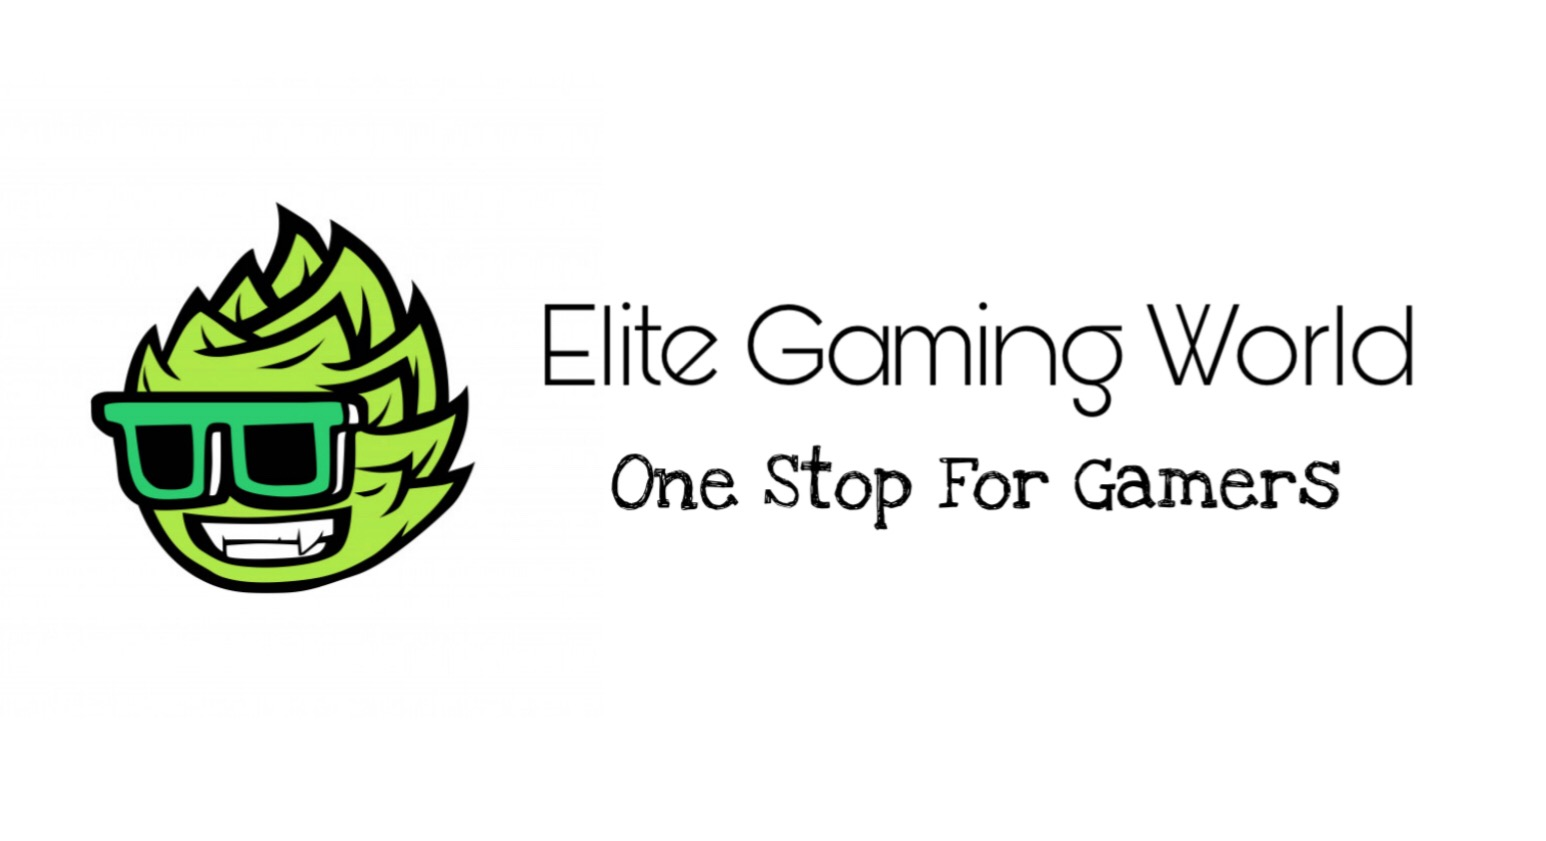 Elite Gaming World